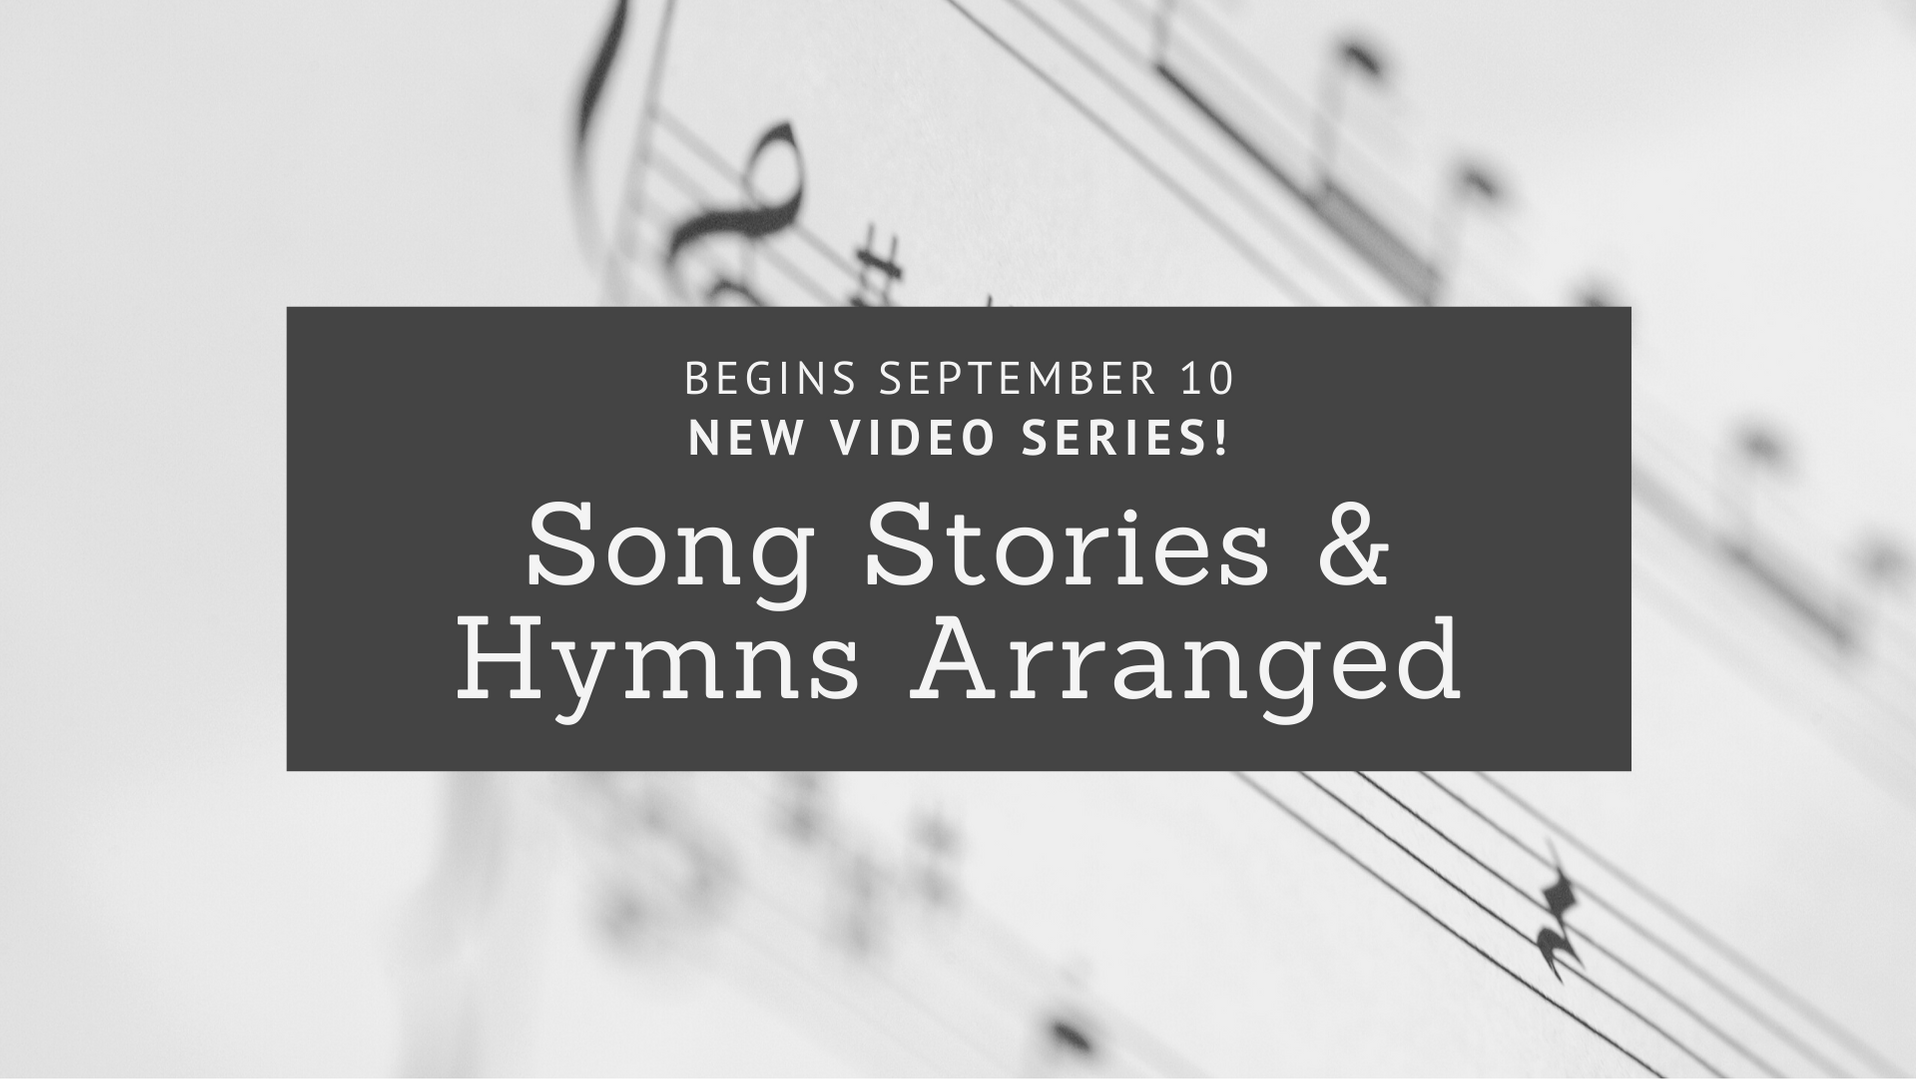 Mon_Song Stories & Hymns Arranged (1)